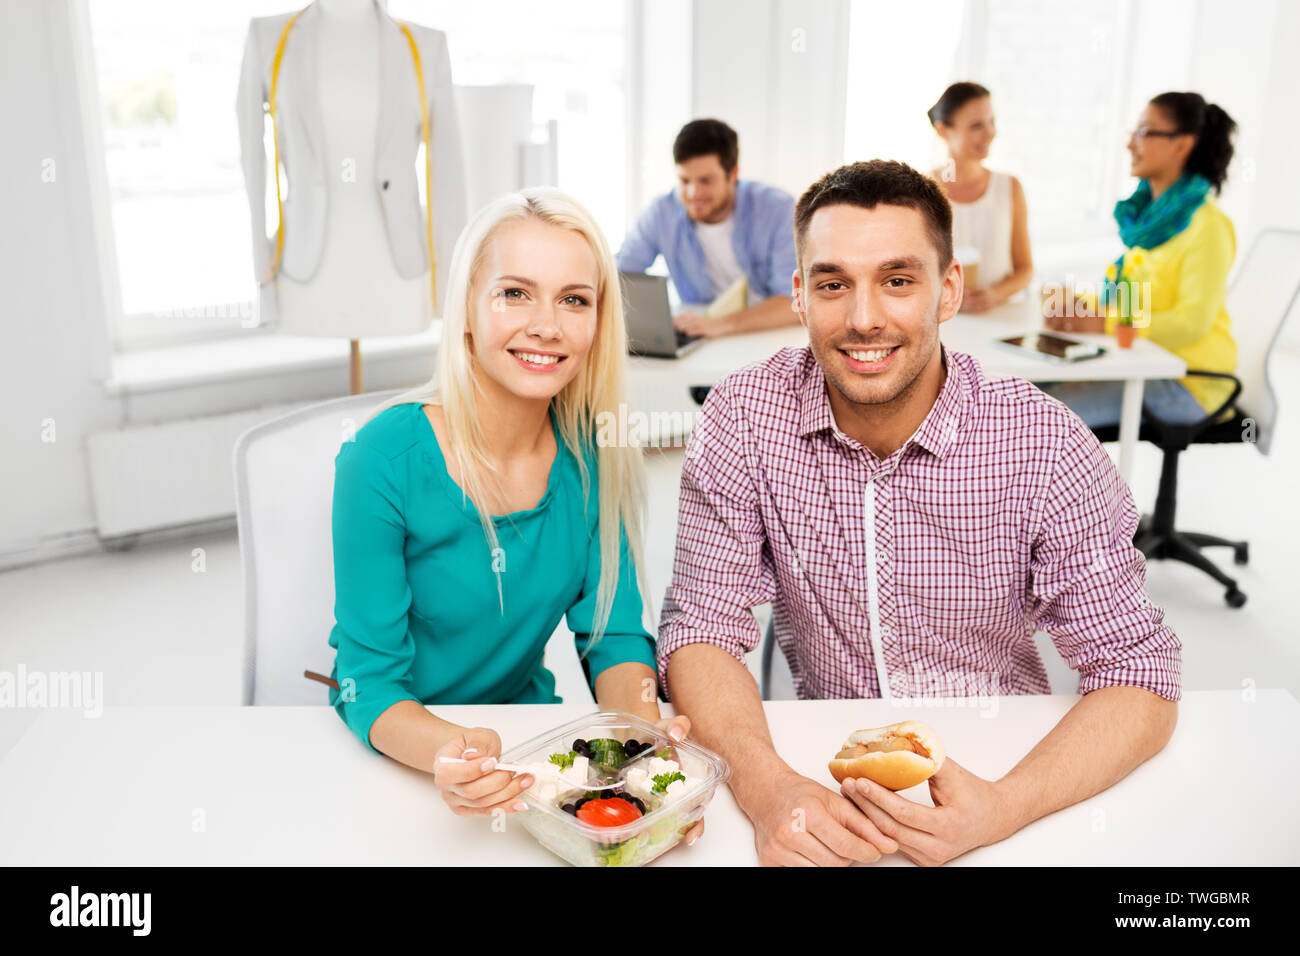 happy colleagues having lunch and eating at office - Stock Image